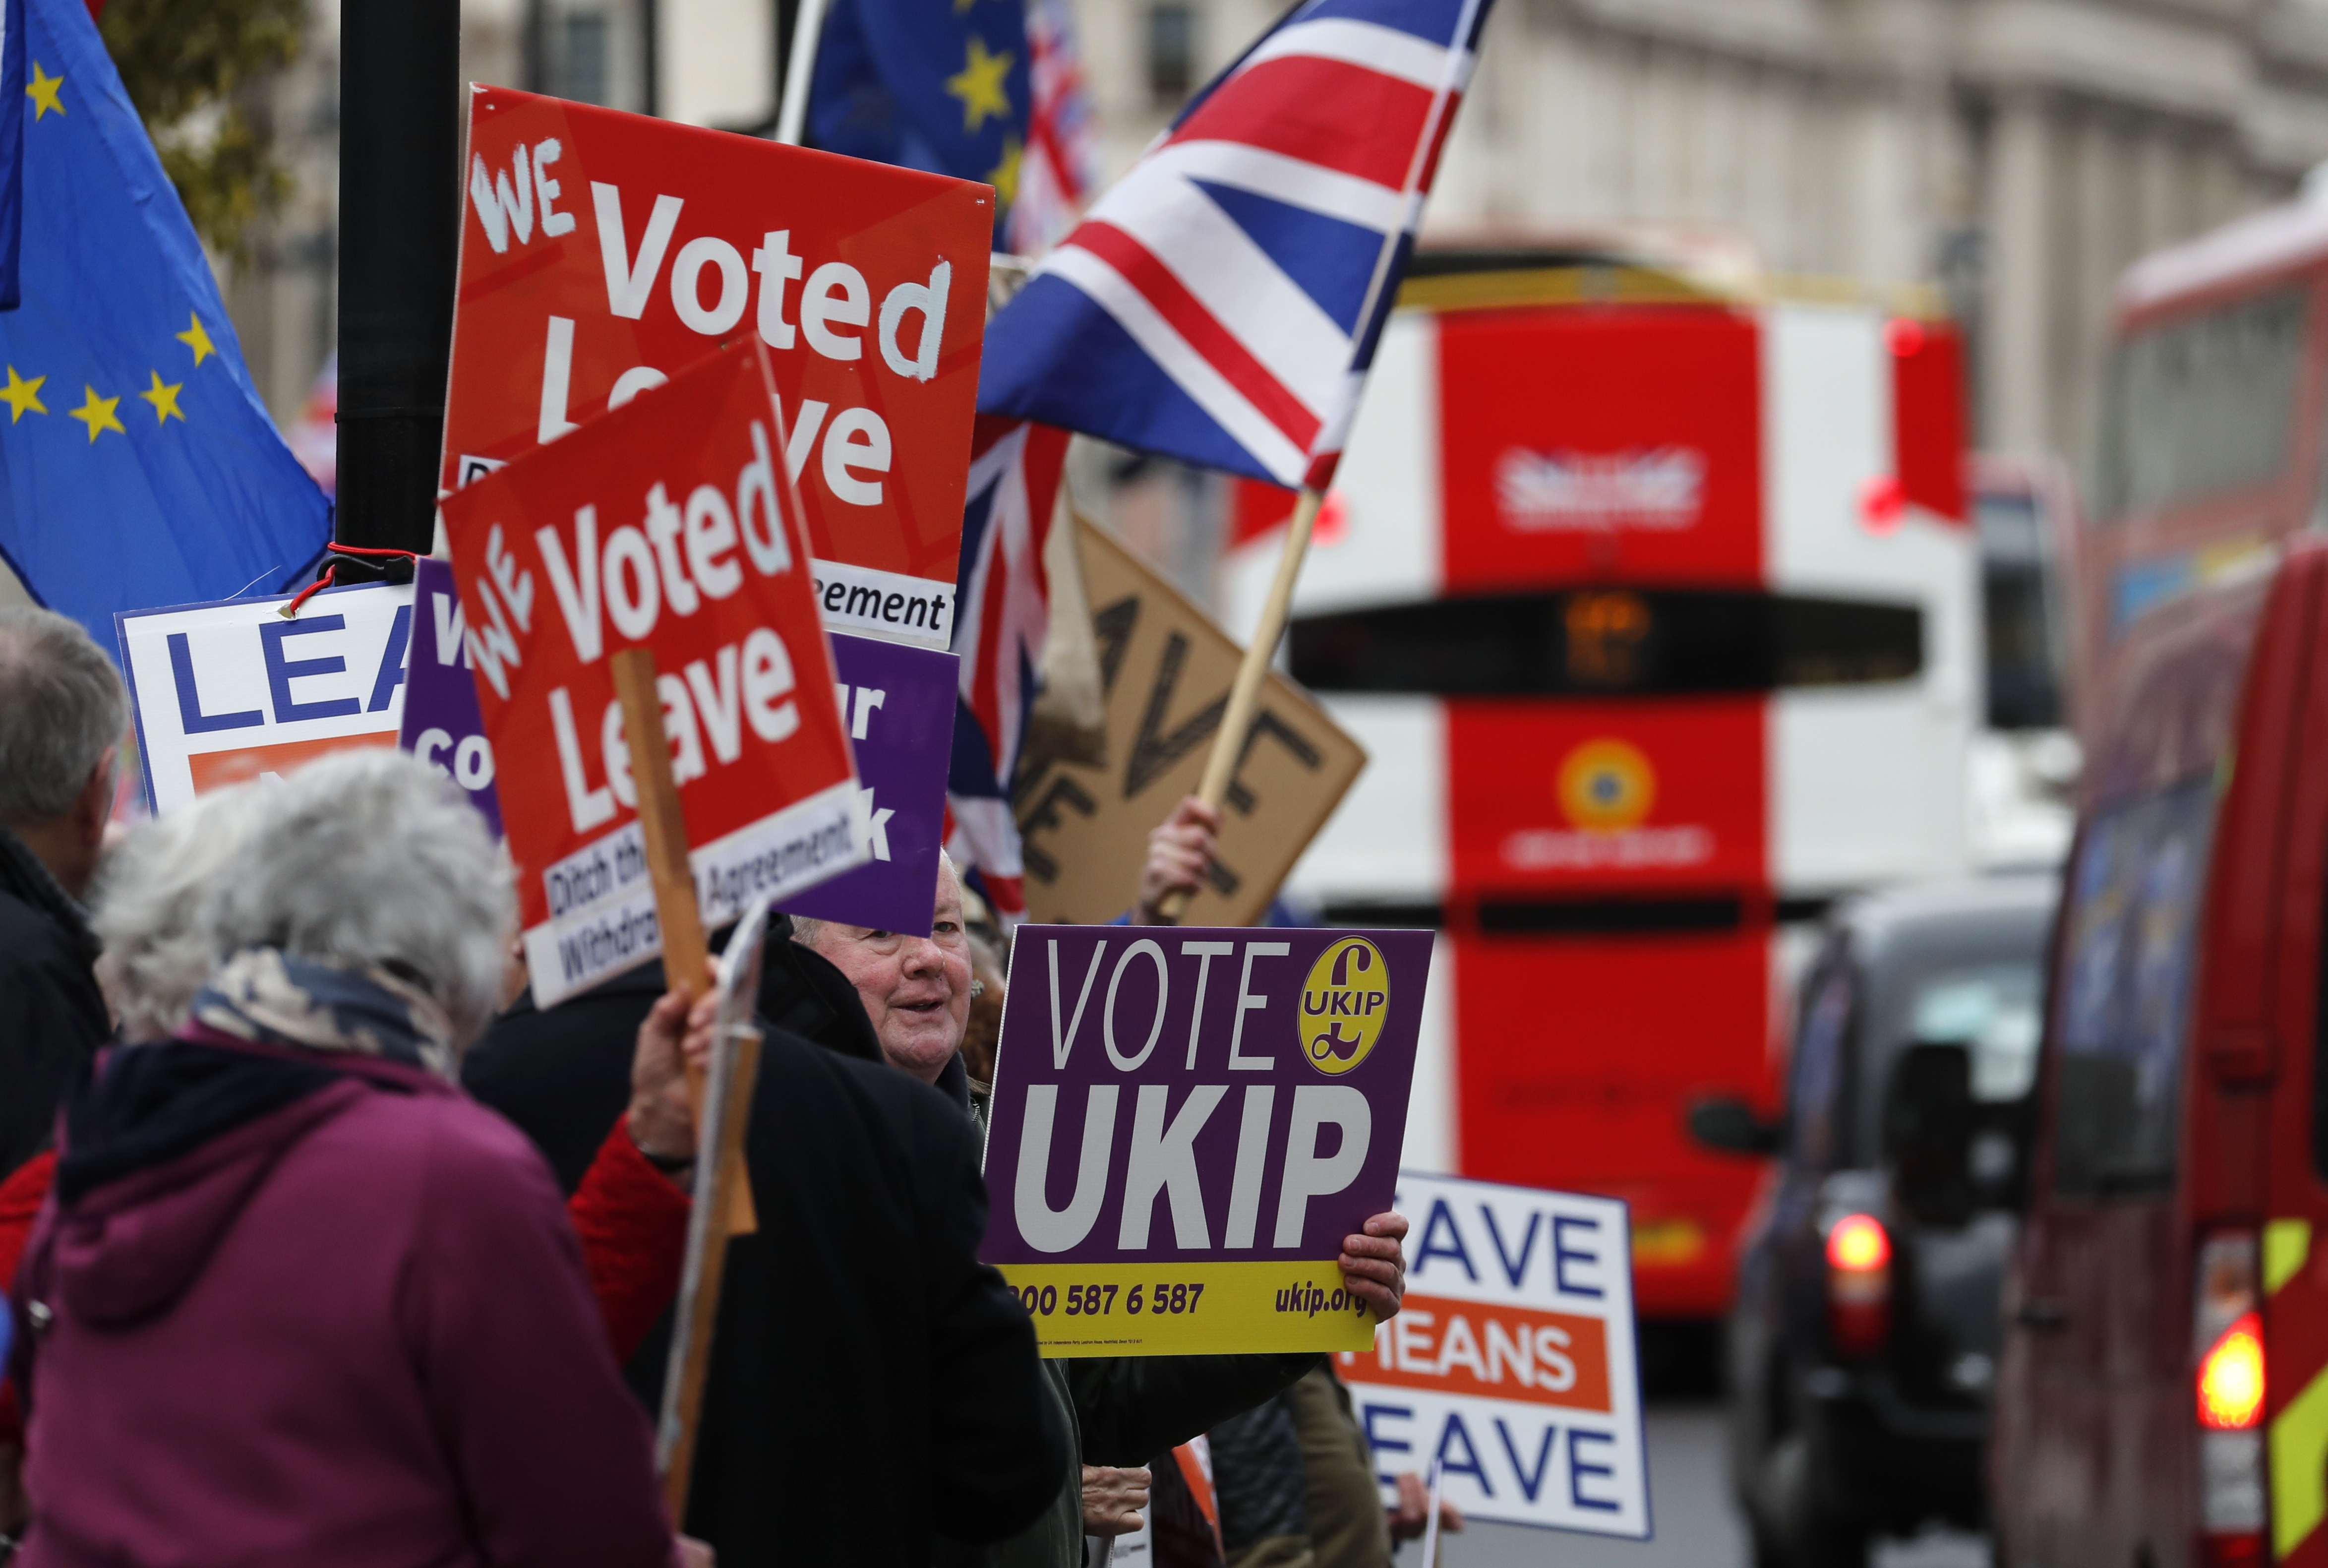 Brexit supporters protest opposite the Houses of Parliament in London, Britain, Jan. 15, 2019.